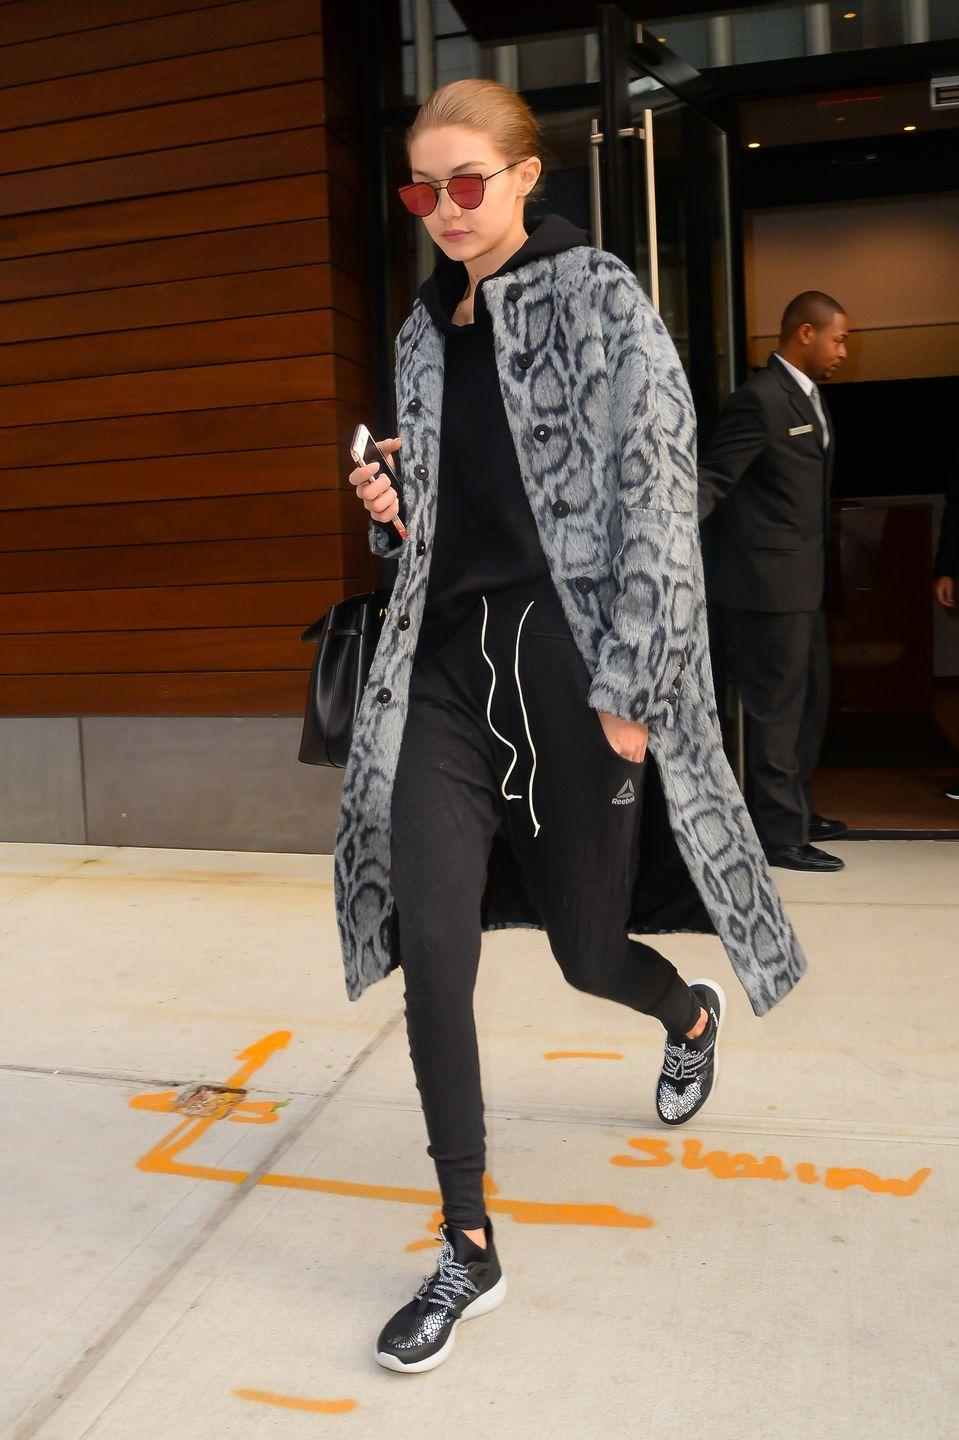 <p>These sweats look runway ready thanks to Gigi's reflective shades and fashion-y coat. </p>